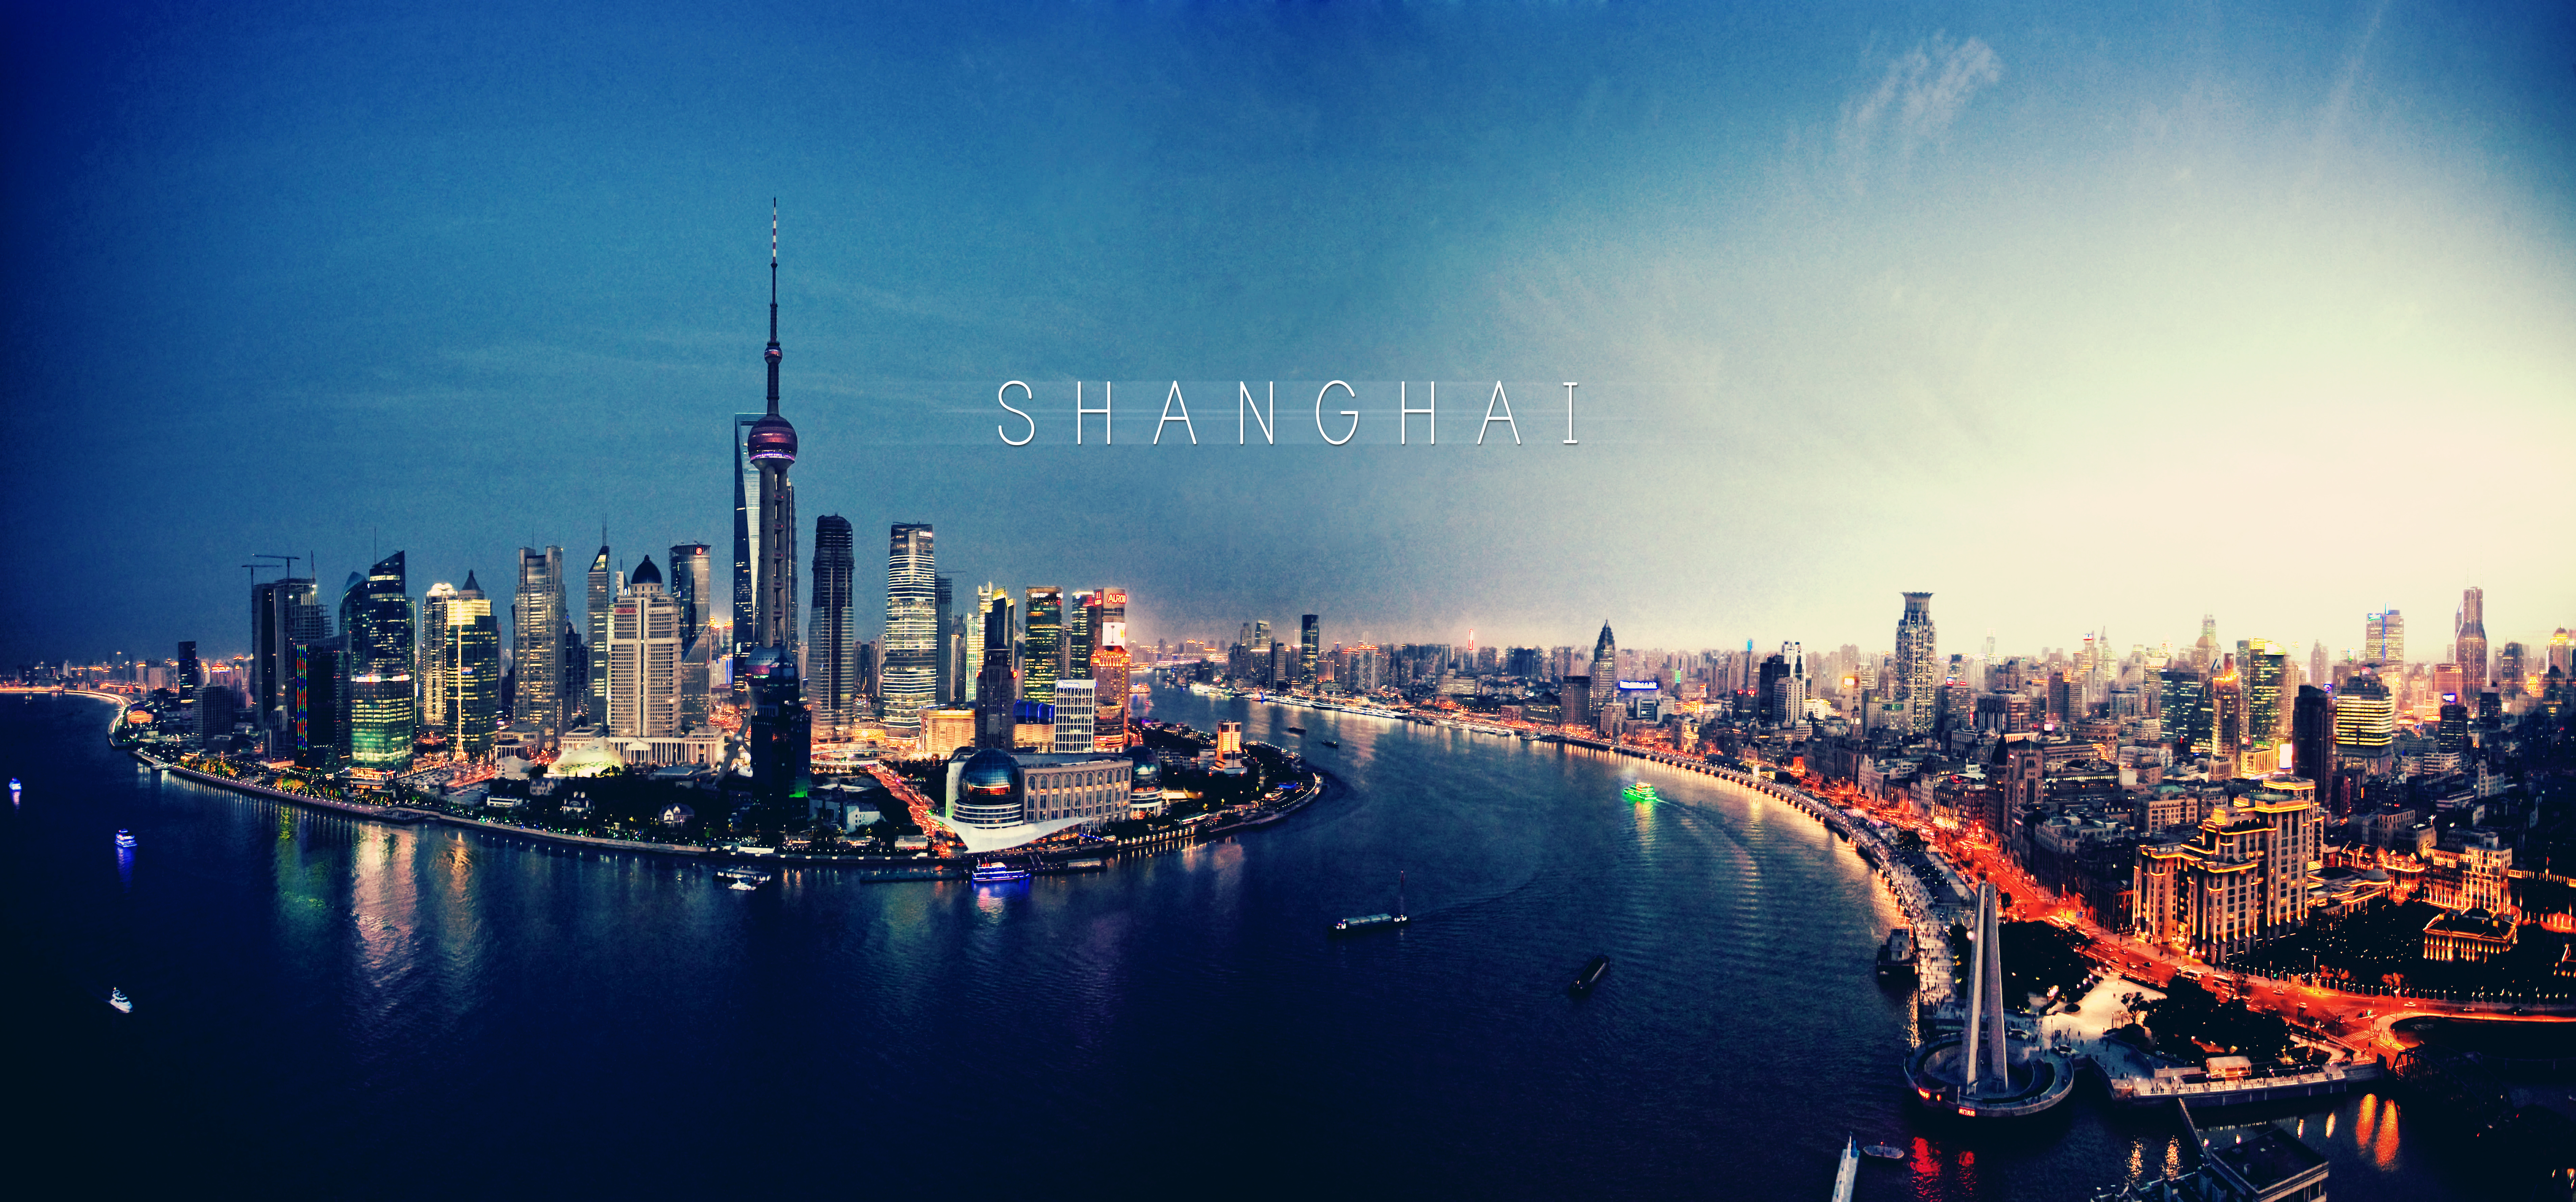 shanghai skyline wallpapers pictures - photo #1